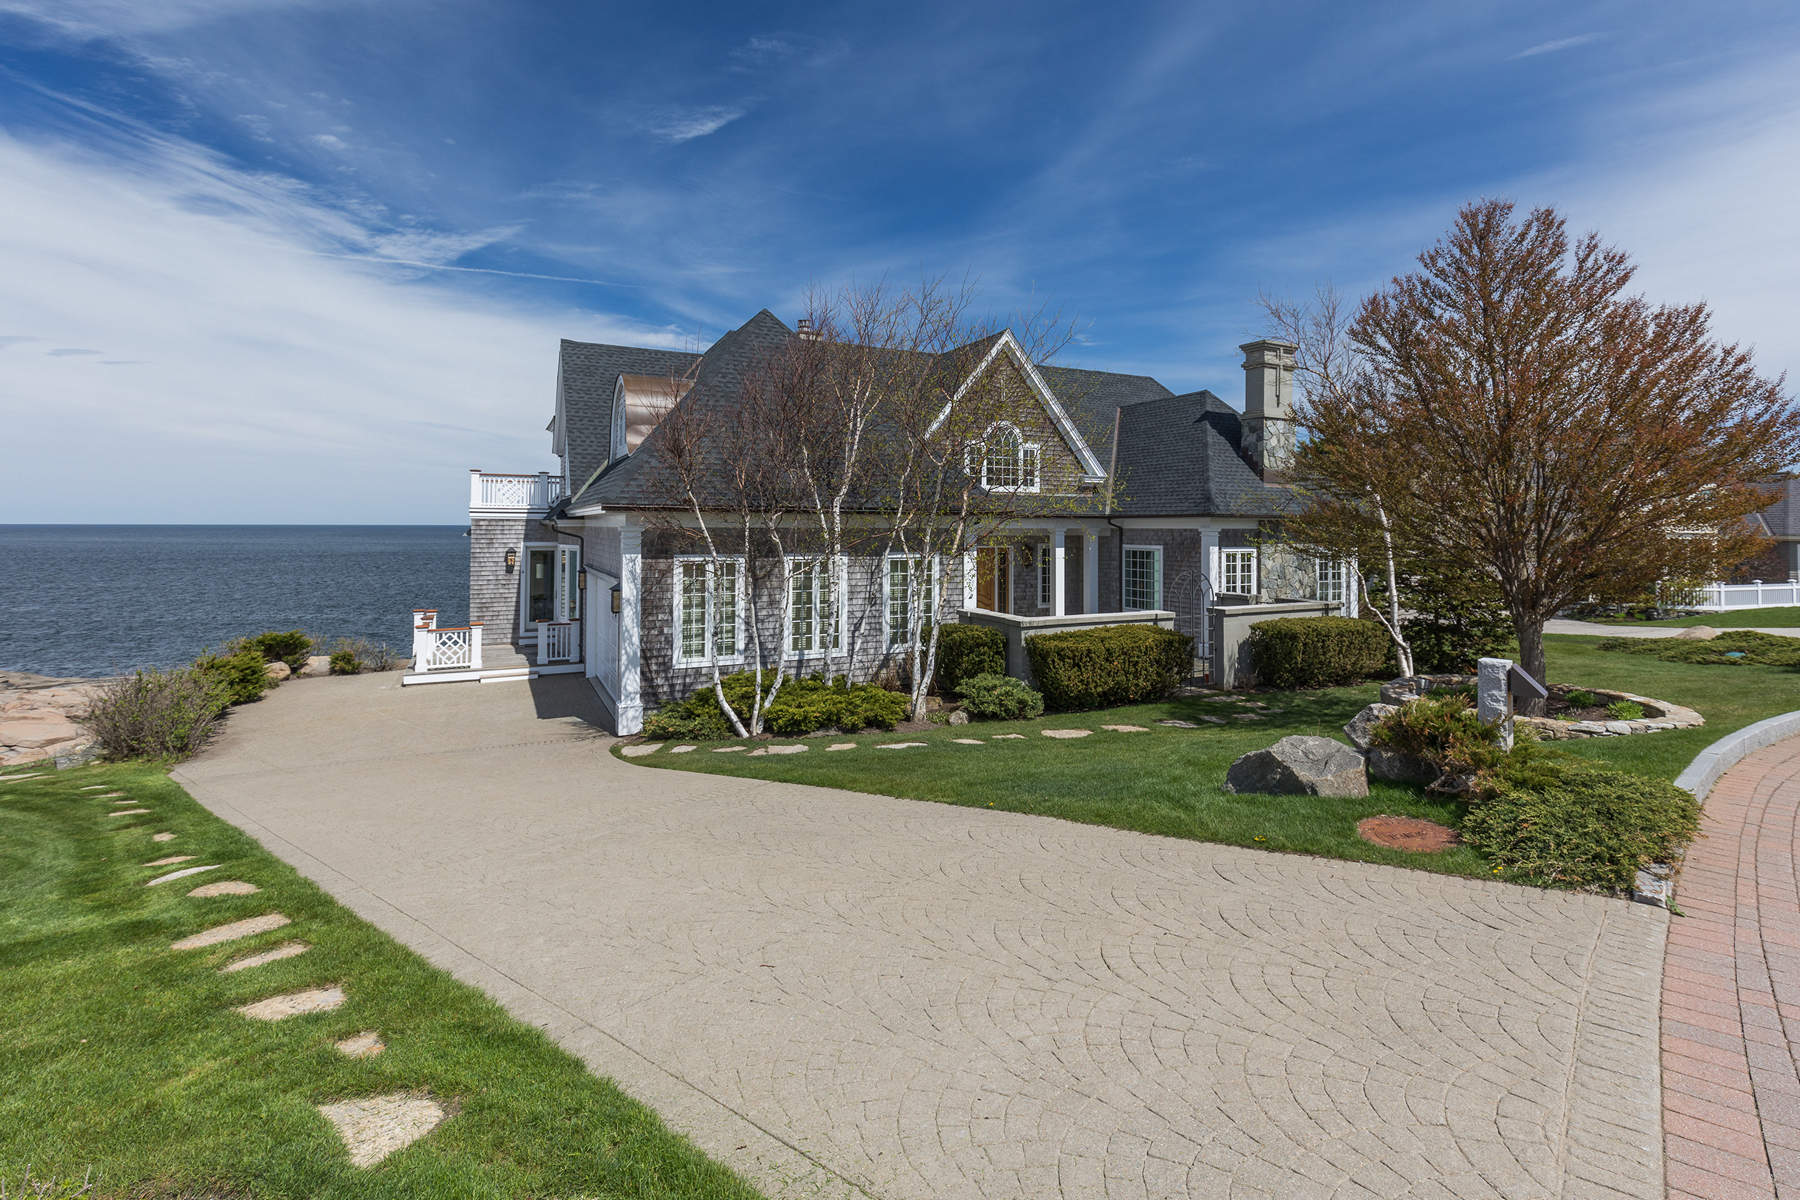 Maison unifamiliale pour l Vente à Grand Oceanfront Home at Lighthouse Watch 4 Lighthouse Watch York, Maine 03909 États-Unis